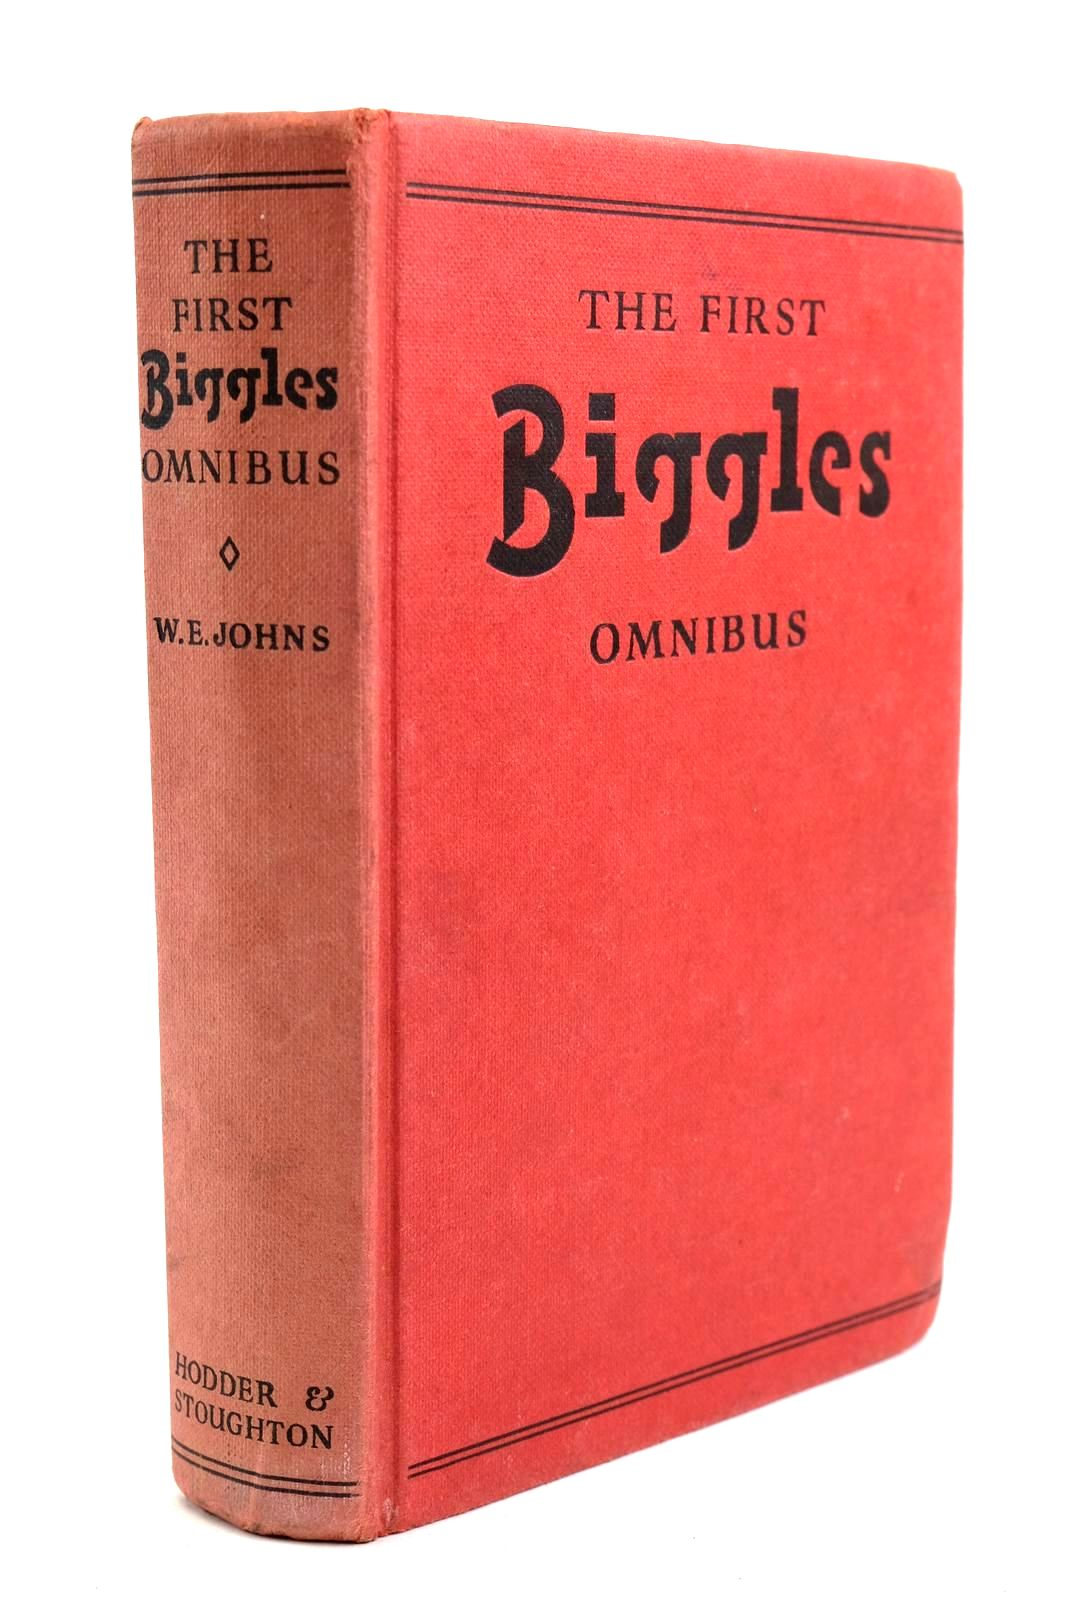 Photo of THE FIRST BIGGLES OMNIBUS written by Johns, W.E. illustrated by Stead,  published by Hodder & Stoughton (STOCK CODE: 1320696)  for sale by Stella & Rose's Books